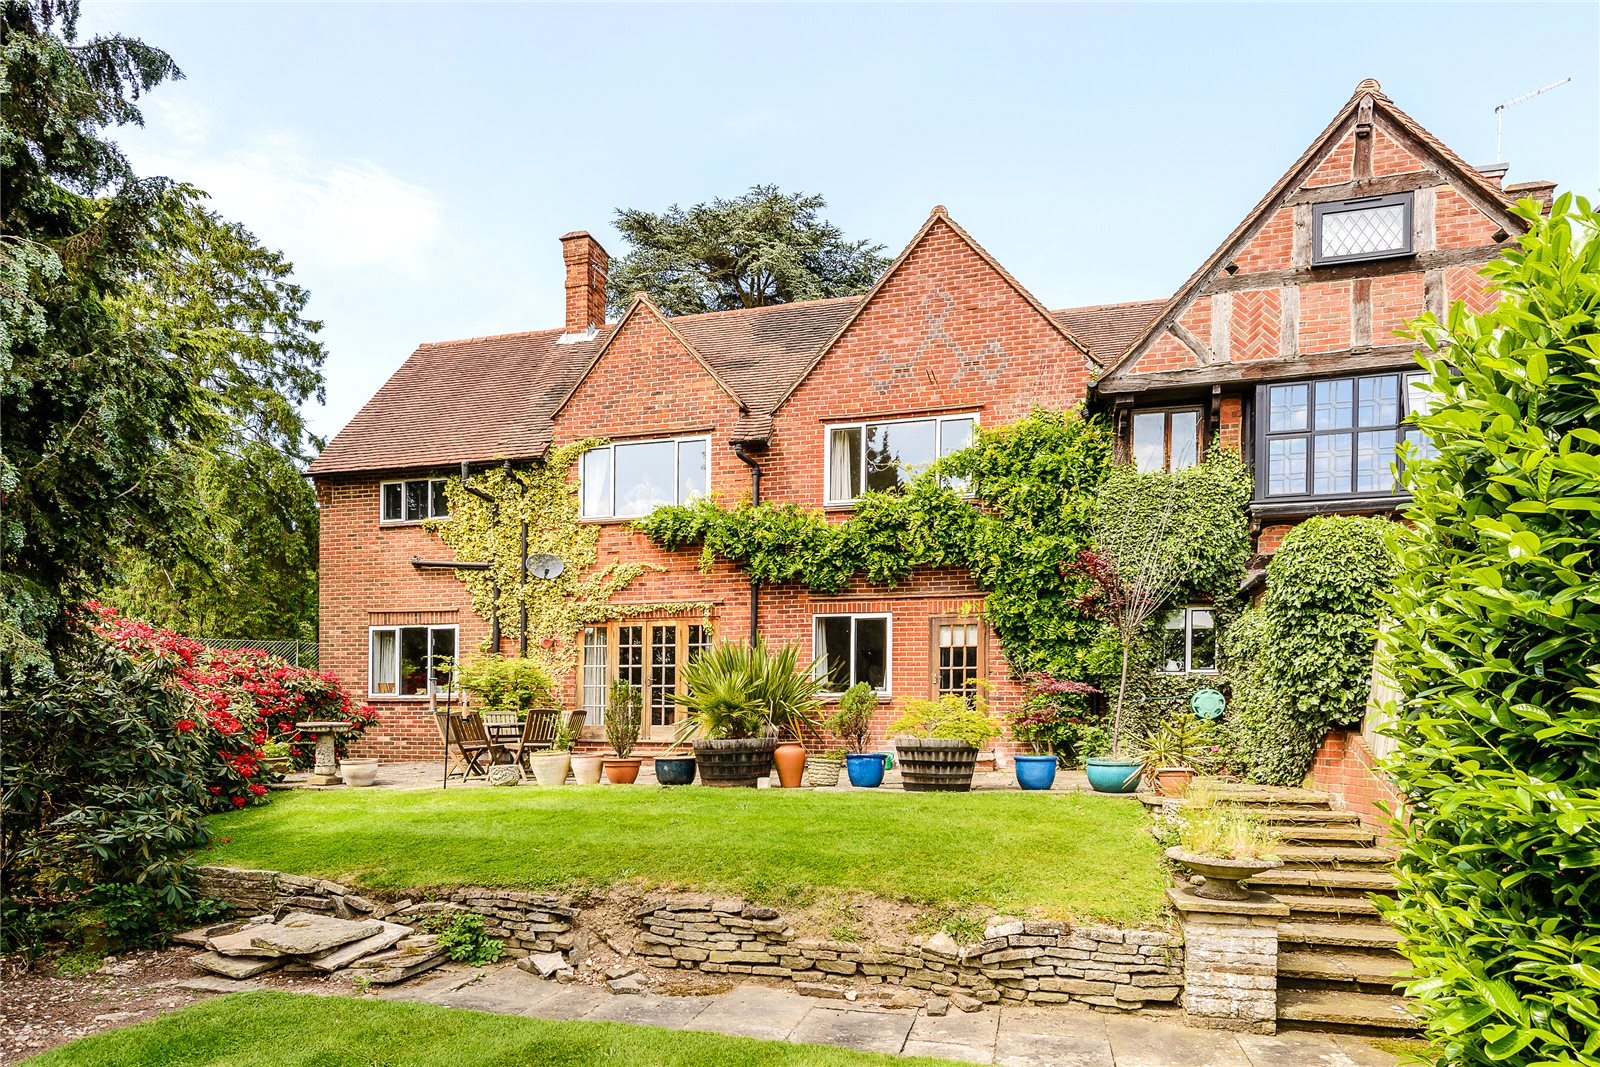 Single Family Home for Sale at Fulmer Lane, Fulmer, Buckinghamshire, SL3 Fulmer, England